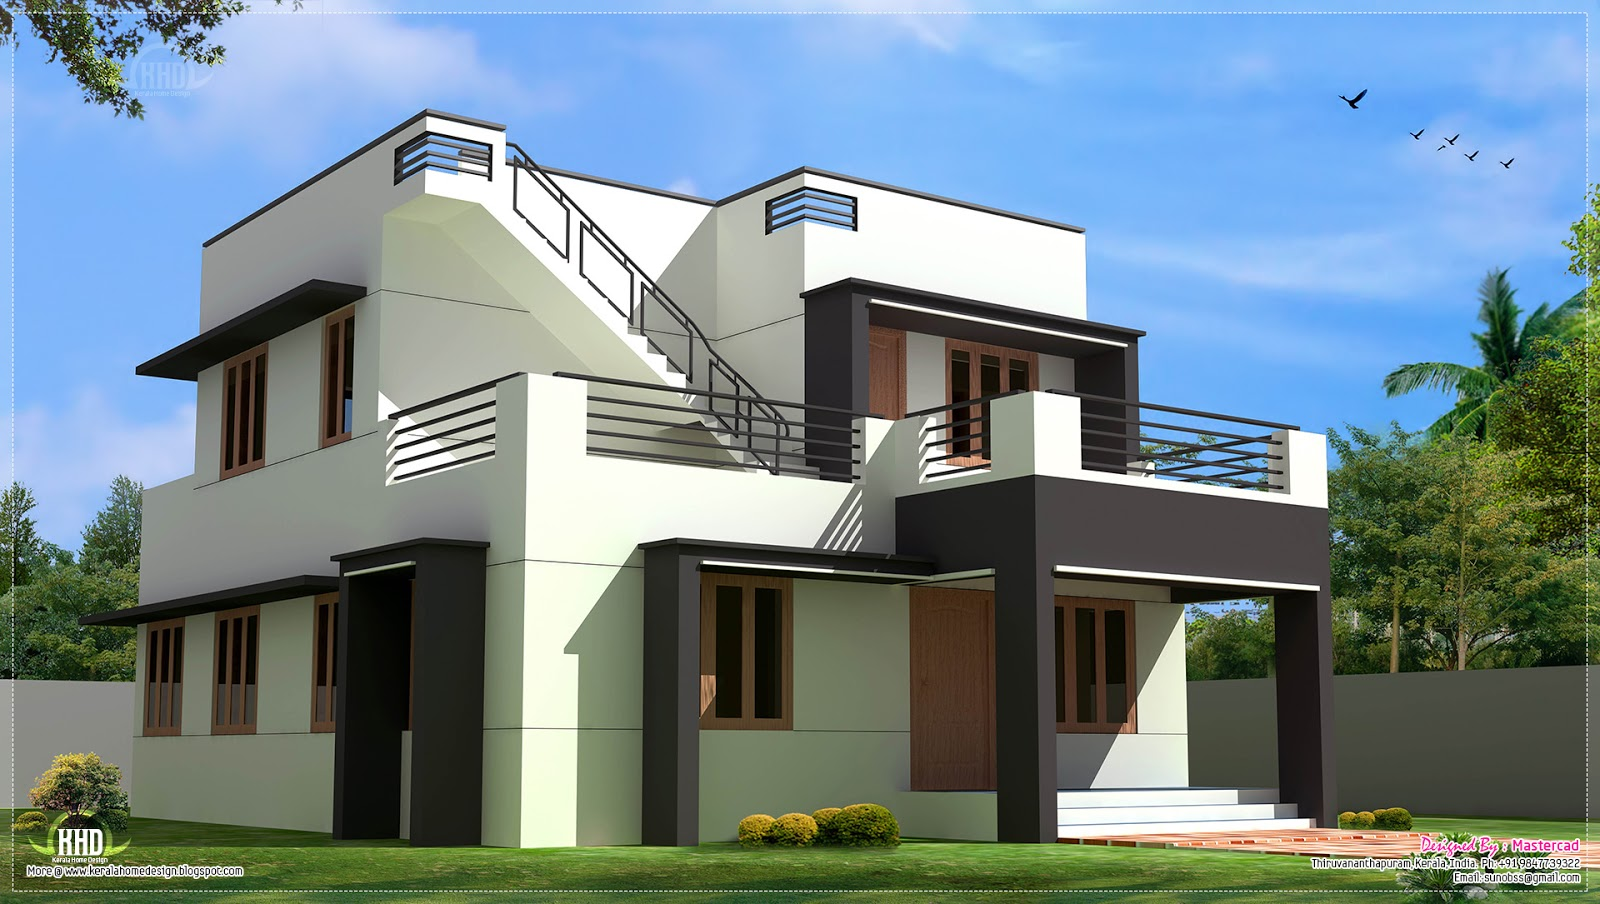 Modern house design in 1700 kerala home design for New house plan design